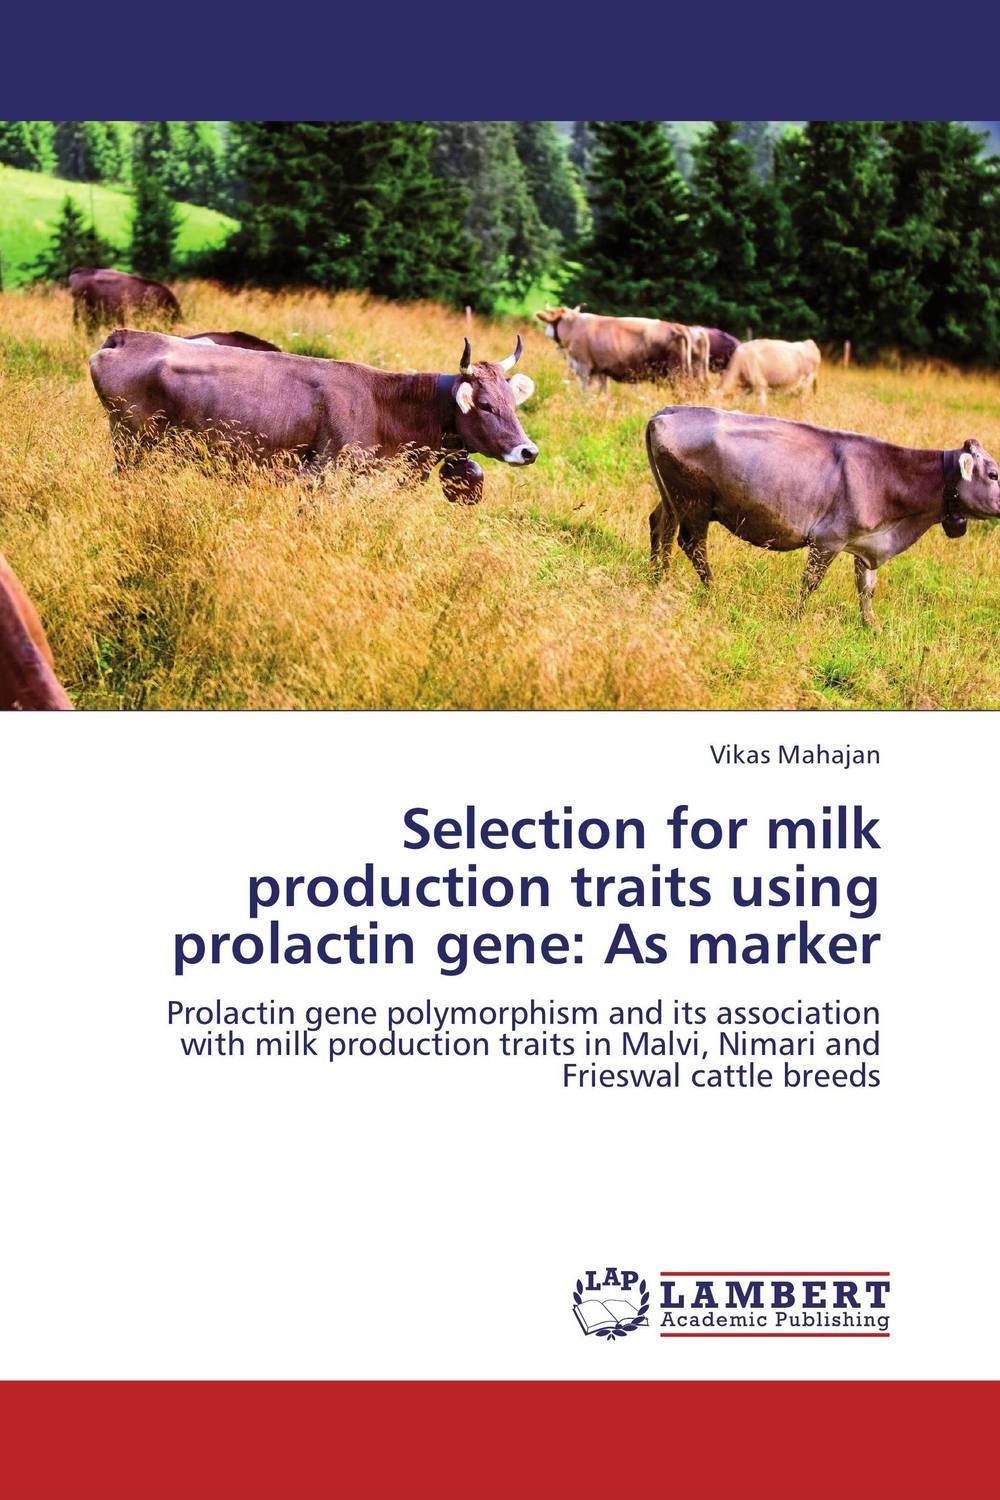 Selection for milk production traits using prolactin gene: As marker claw disorders in dairy cows under smallholder zero grazing units